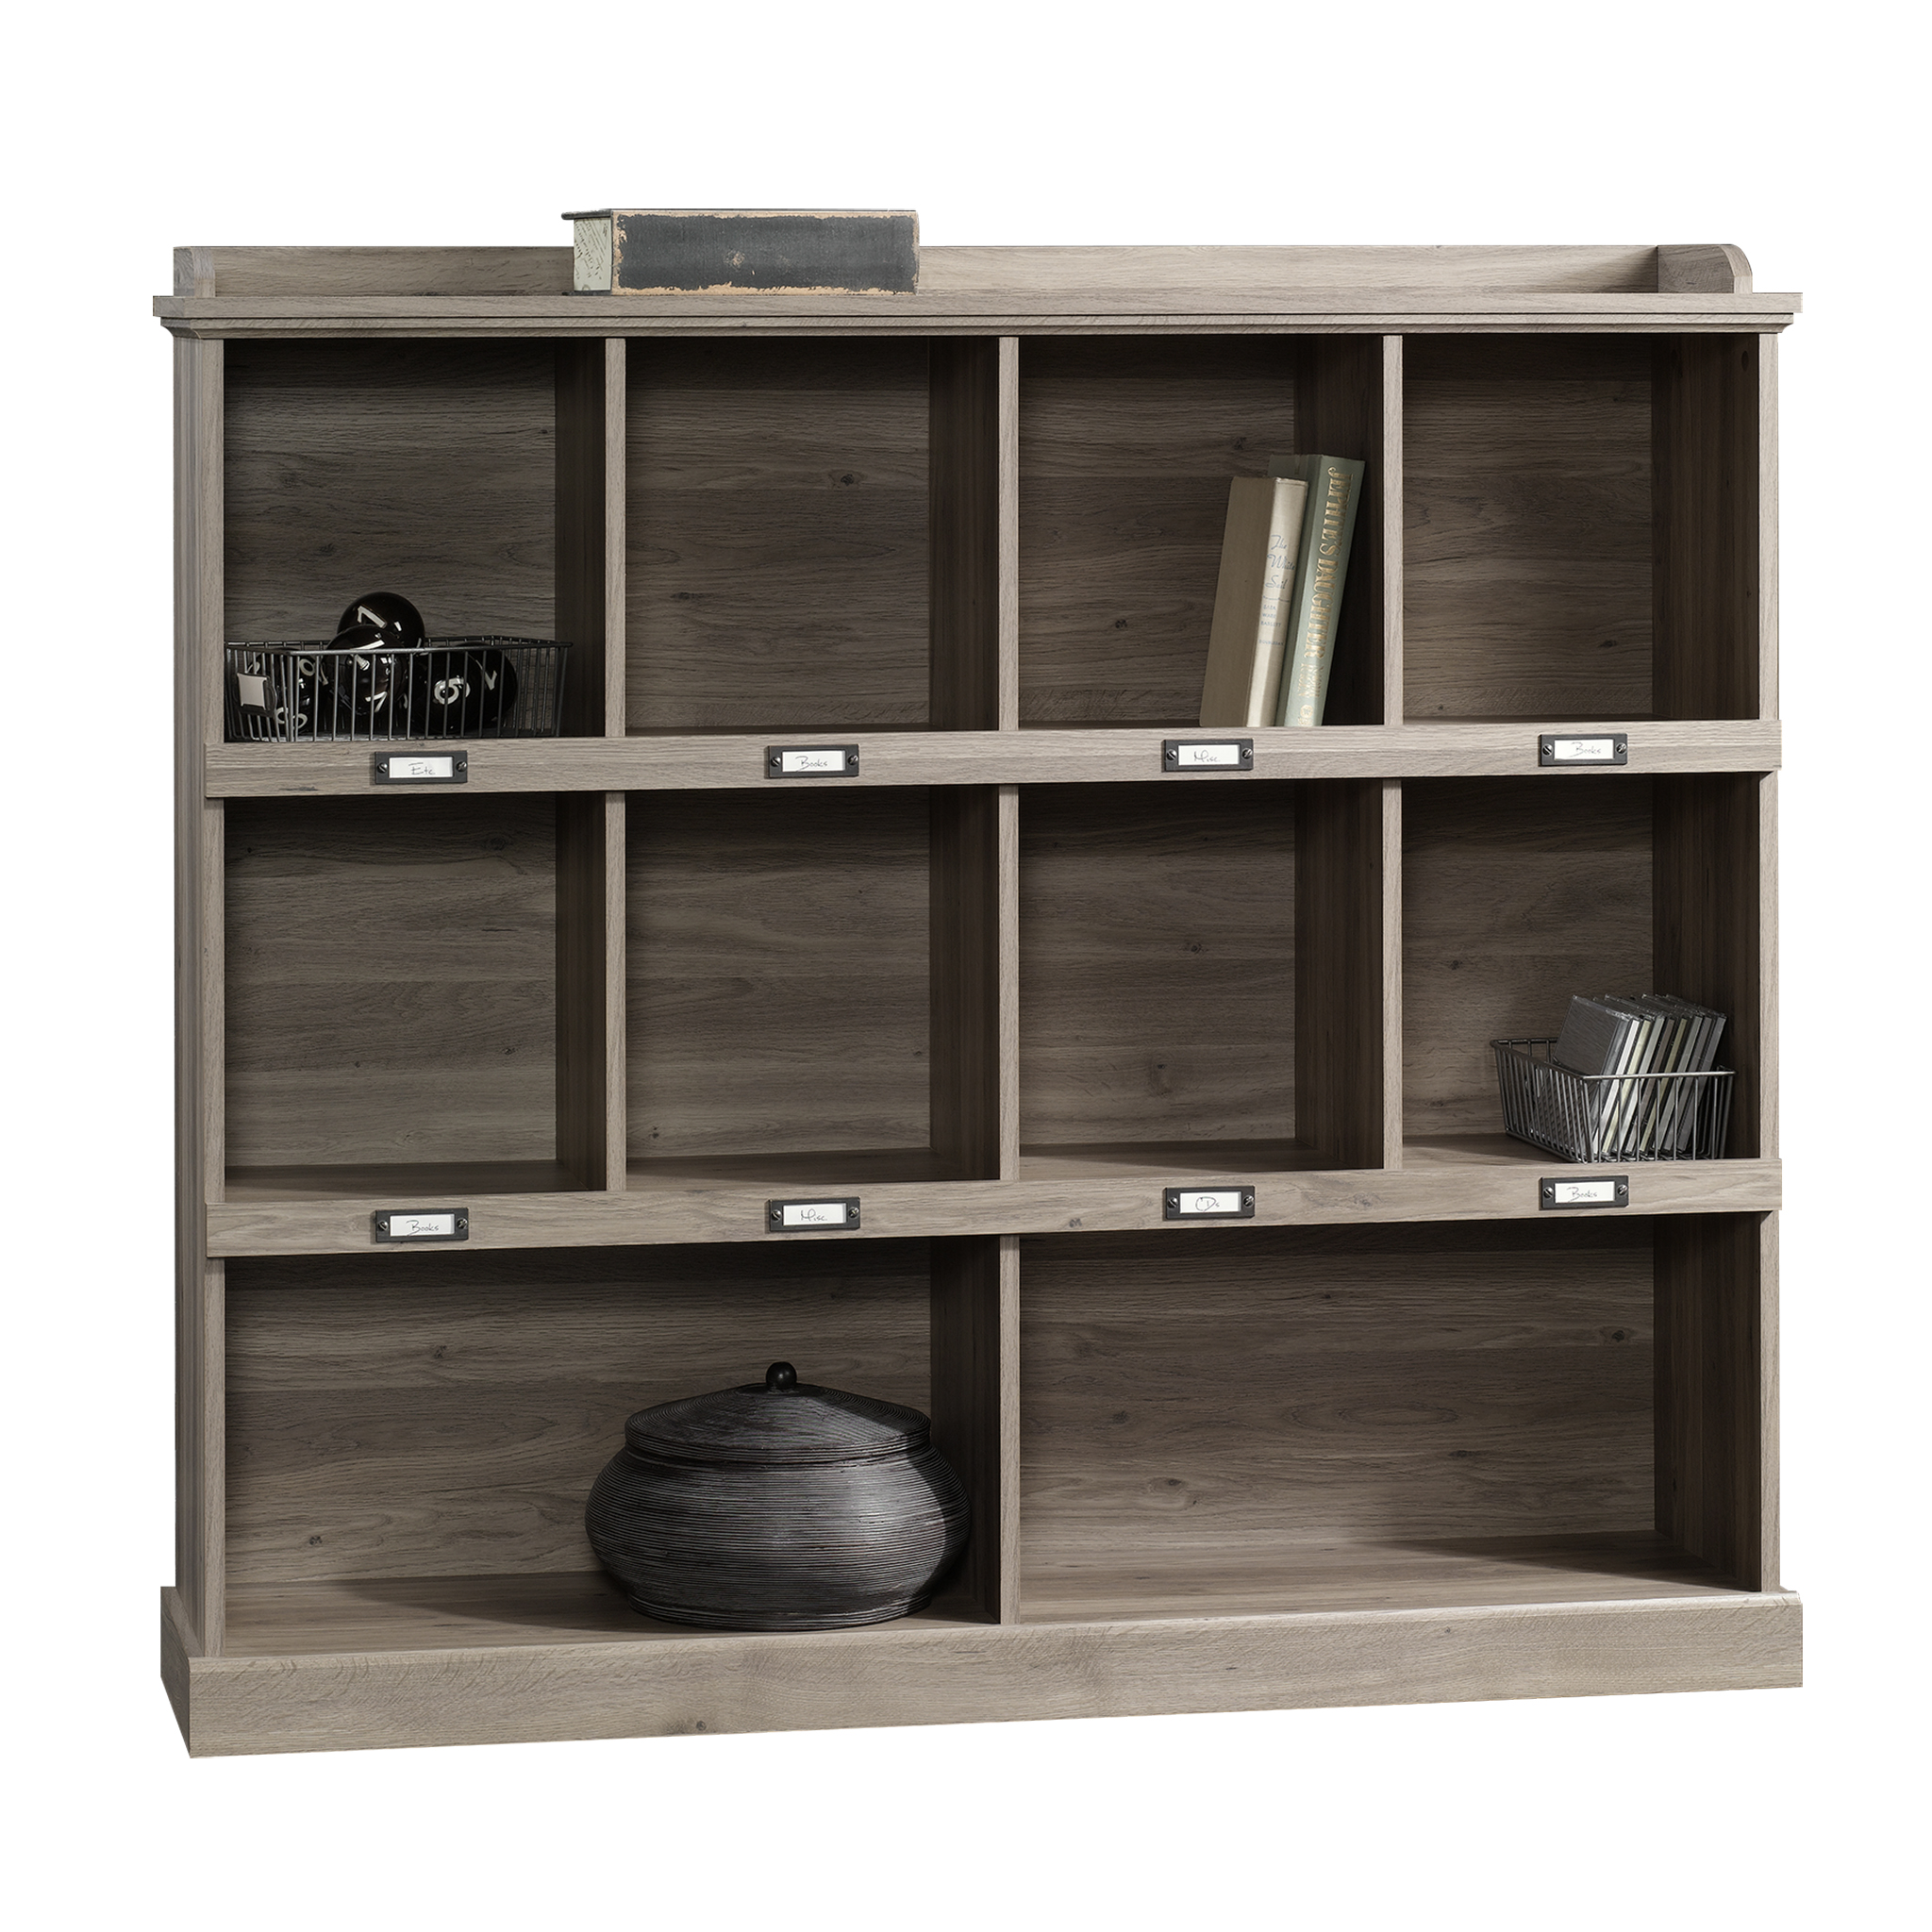 Sauder Barrister Lane Bookcase, Multiple Finishes